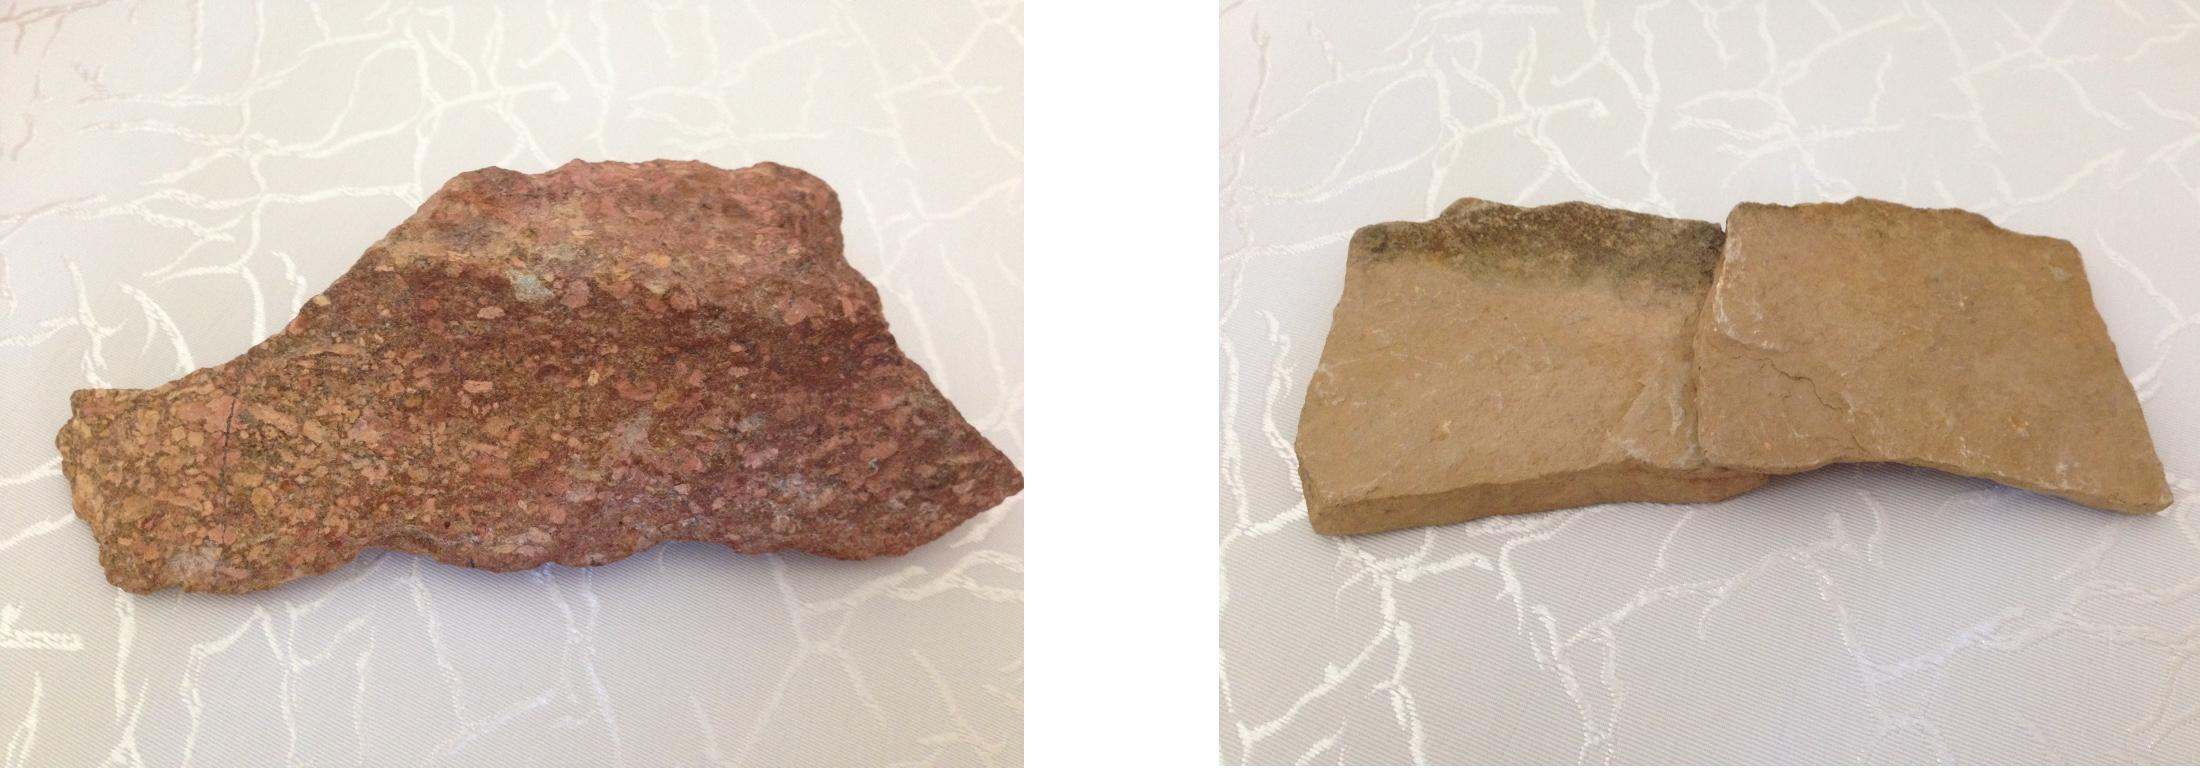 Red Sandstone (left) and Liimestone (right)